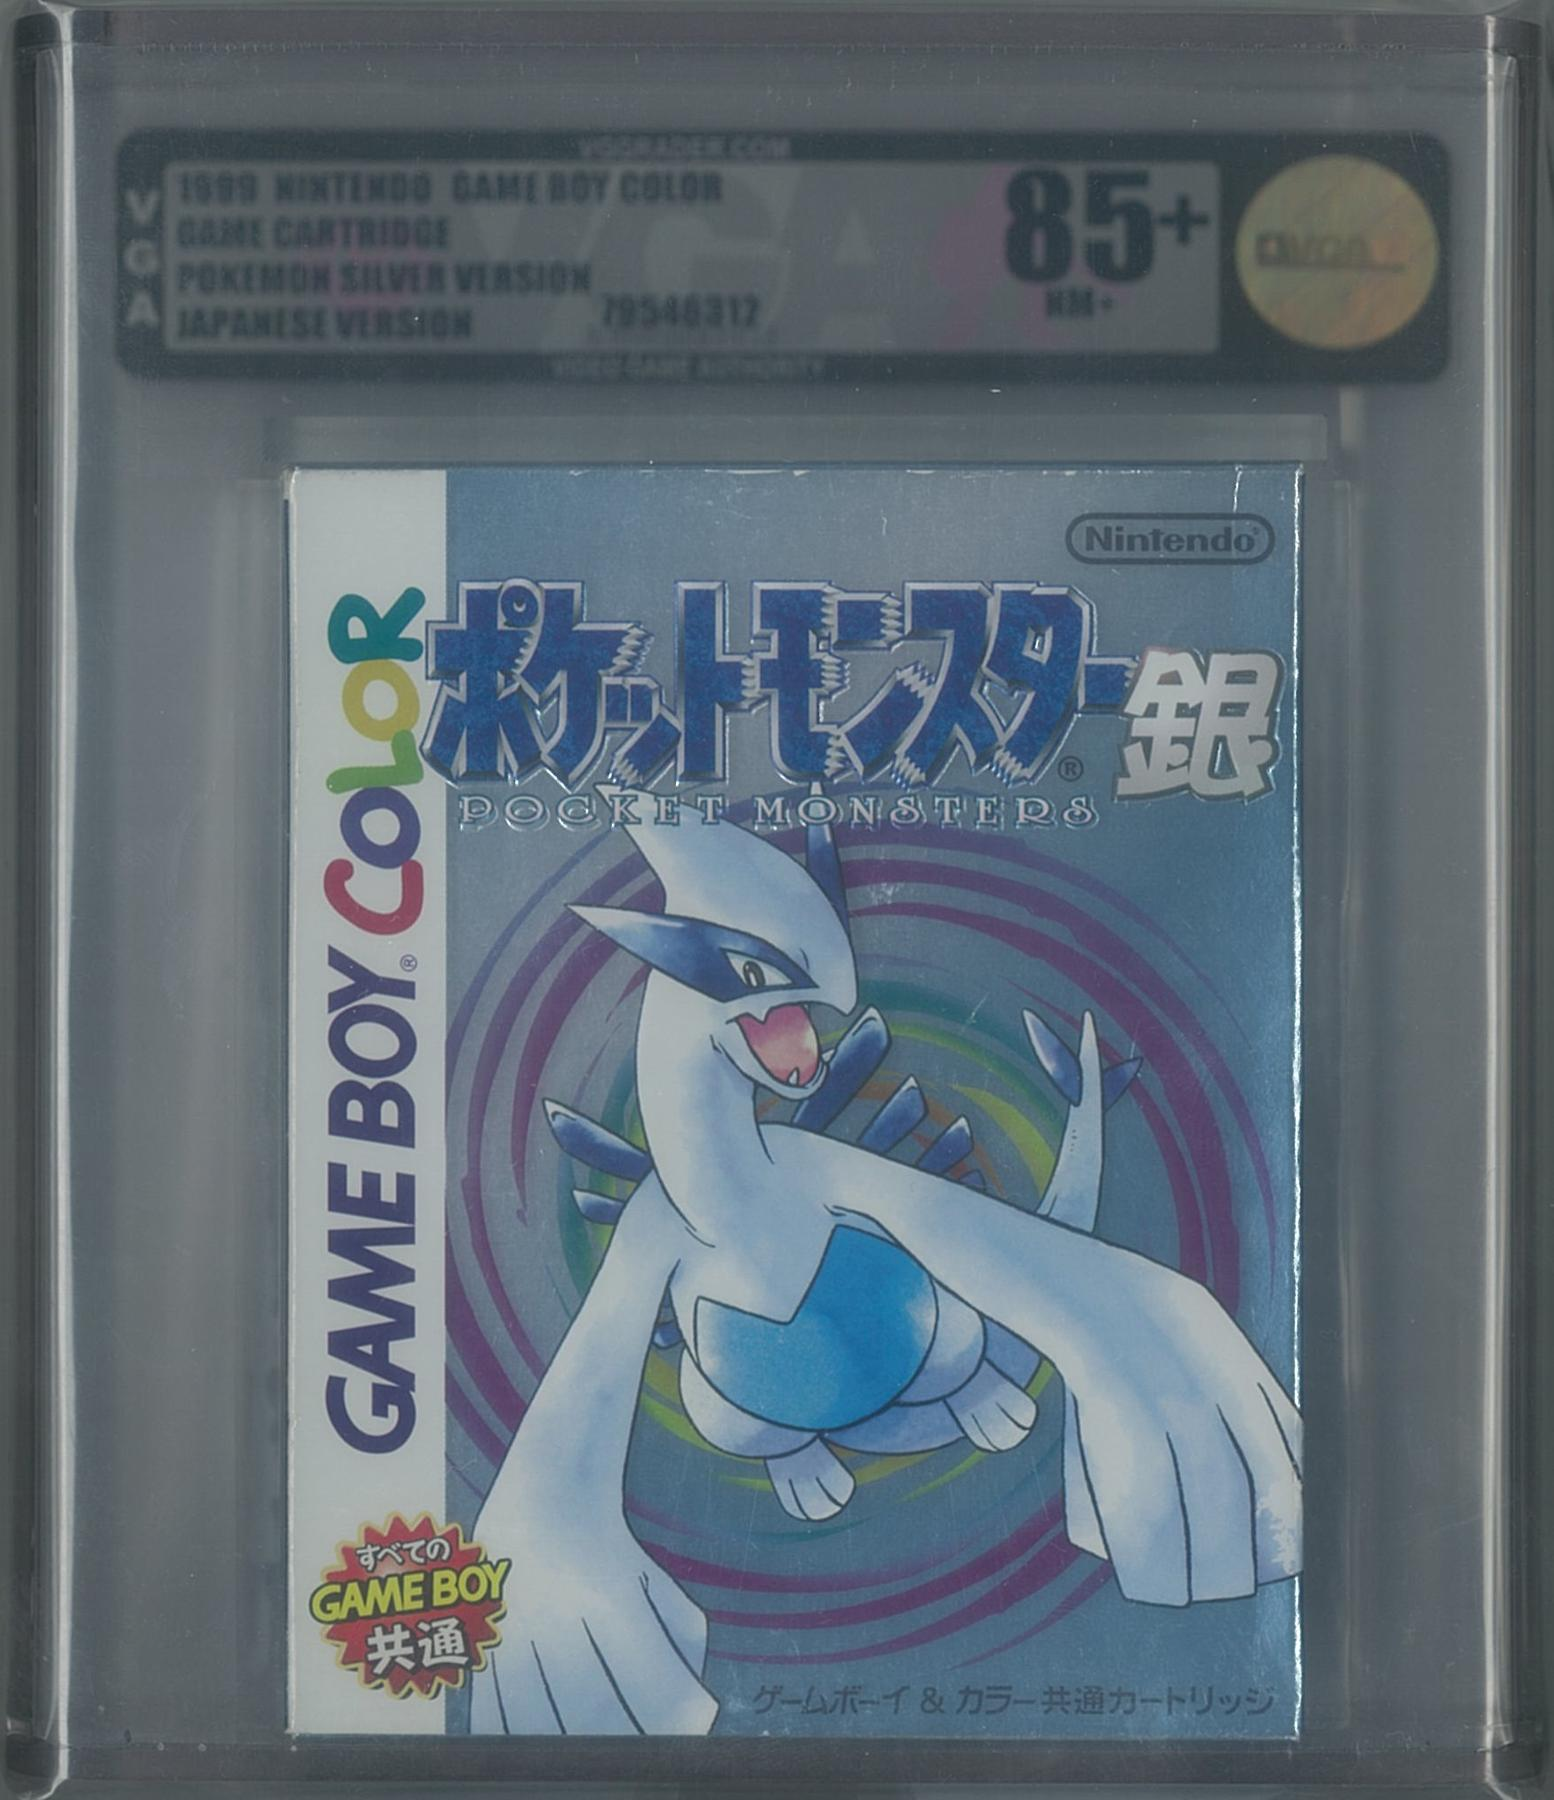 Color game japanese - Nintendo Game Boy Color Pokemon Silver Japanese Vga Graded 85 Nm Gold